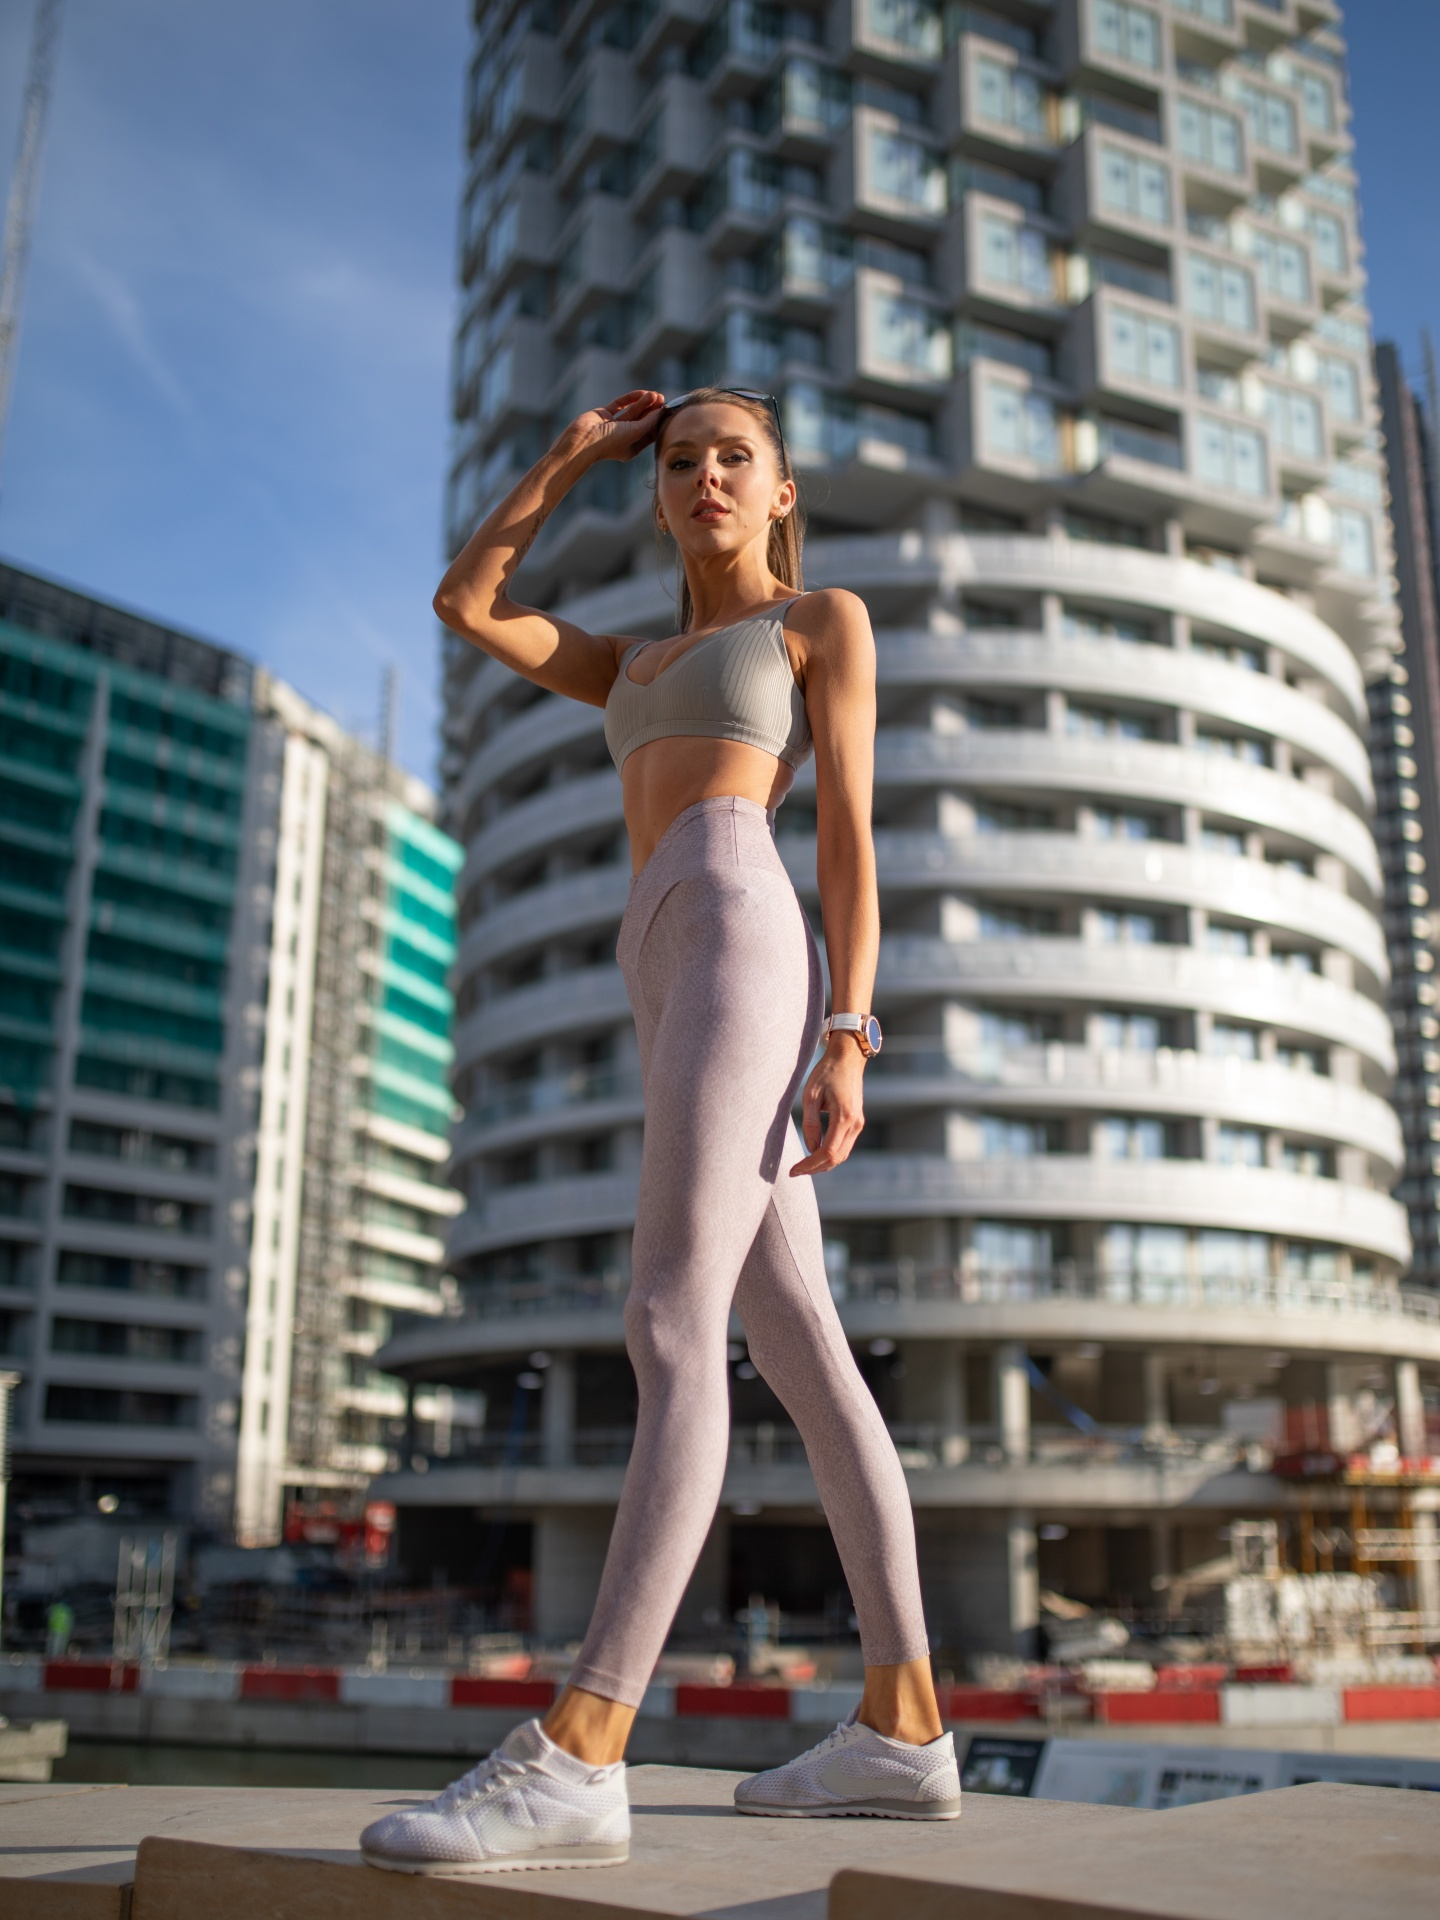 sports, leggings, gym, what to wear to the gym, fitness, exercise, leggings uk, sports leggings, high waisted leggings, yoga leggings, workout, activewear, oysho, puma, nike, activewear uk, women's activewear, activewear womens